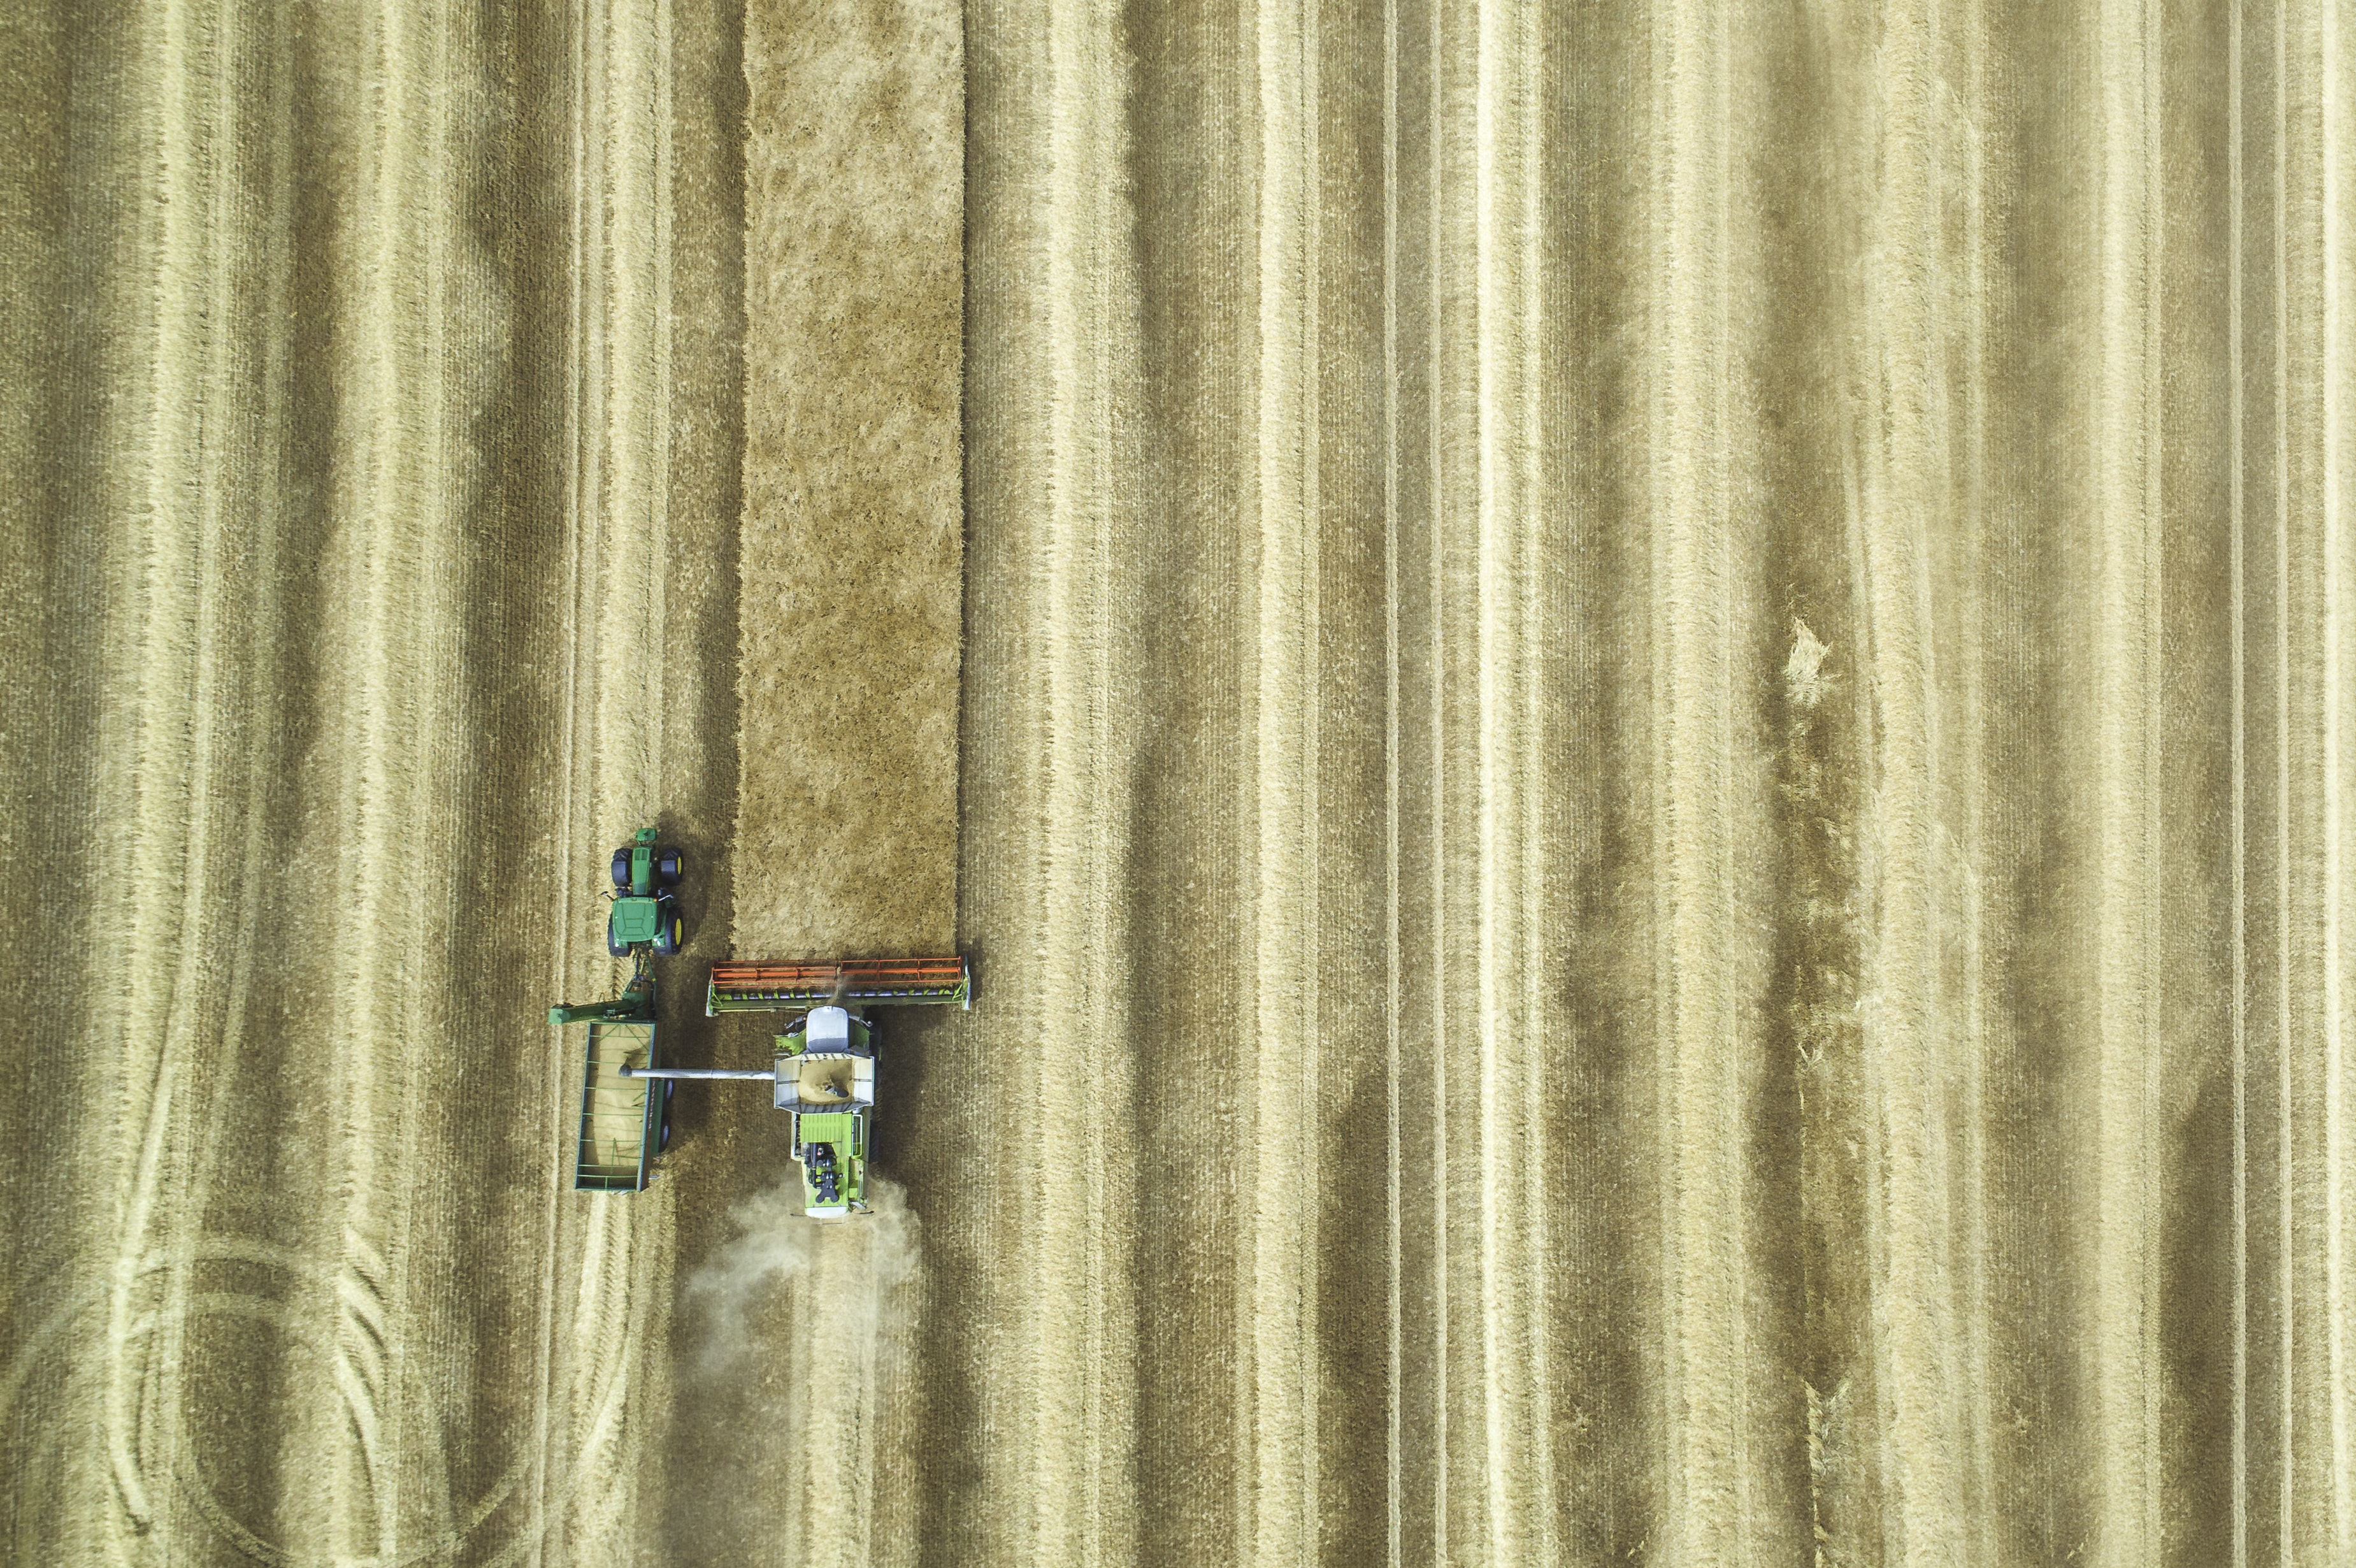 A drone shot of a combine harvester working in a golden field